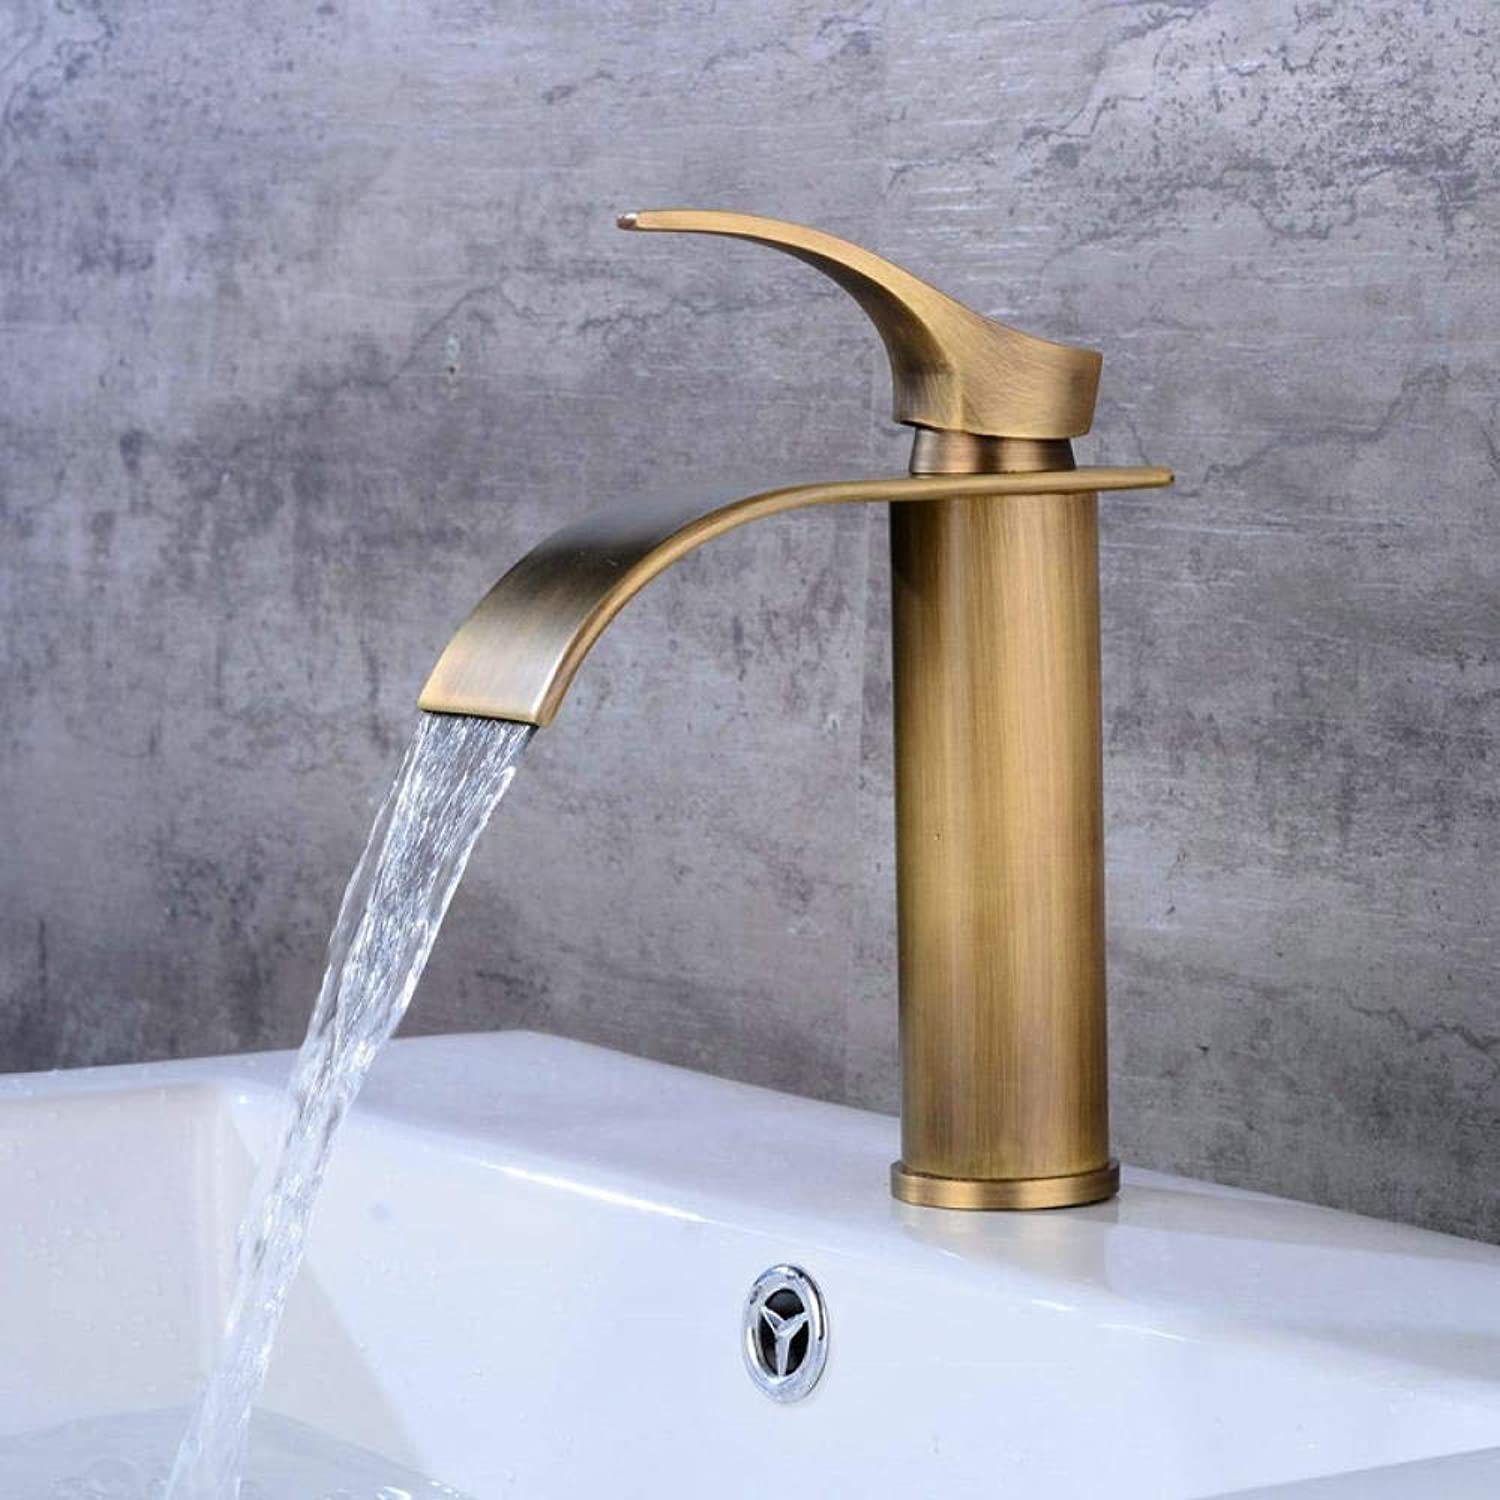 Tap Hot and Cold Water Faucet High Section Waterfall Faucet Kitchen gold-Plated Faucet